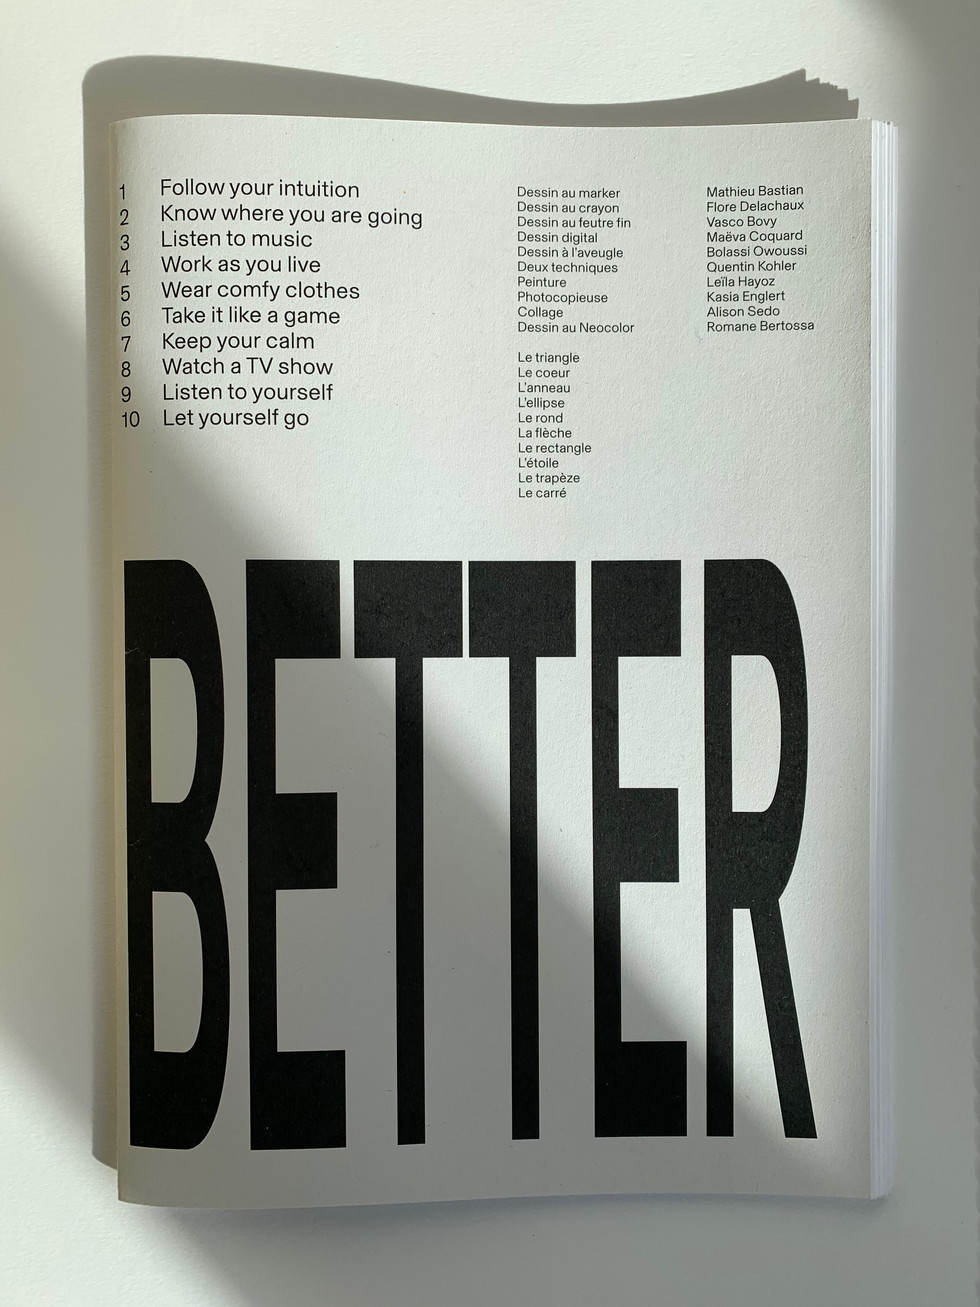 How to work better, 2020 Workshop at Têtard, Art and Design school in Lausanne, Switzerland  Industry: Education